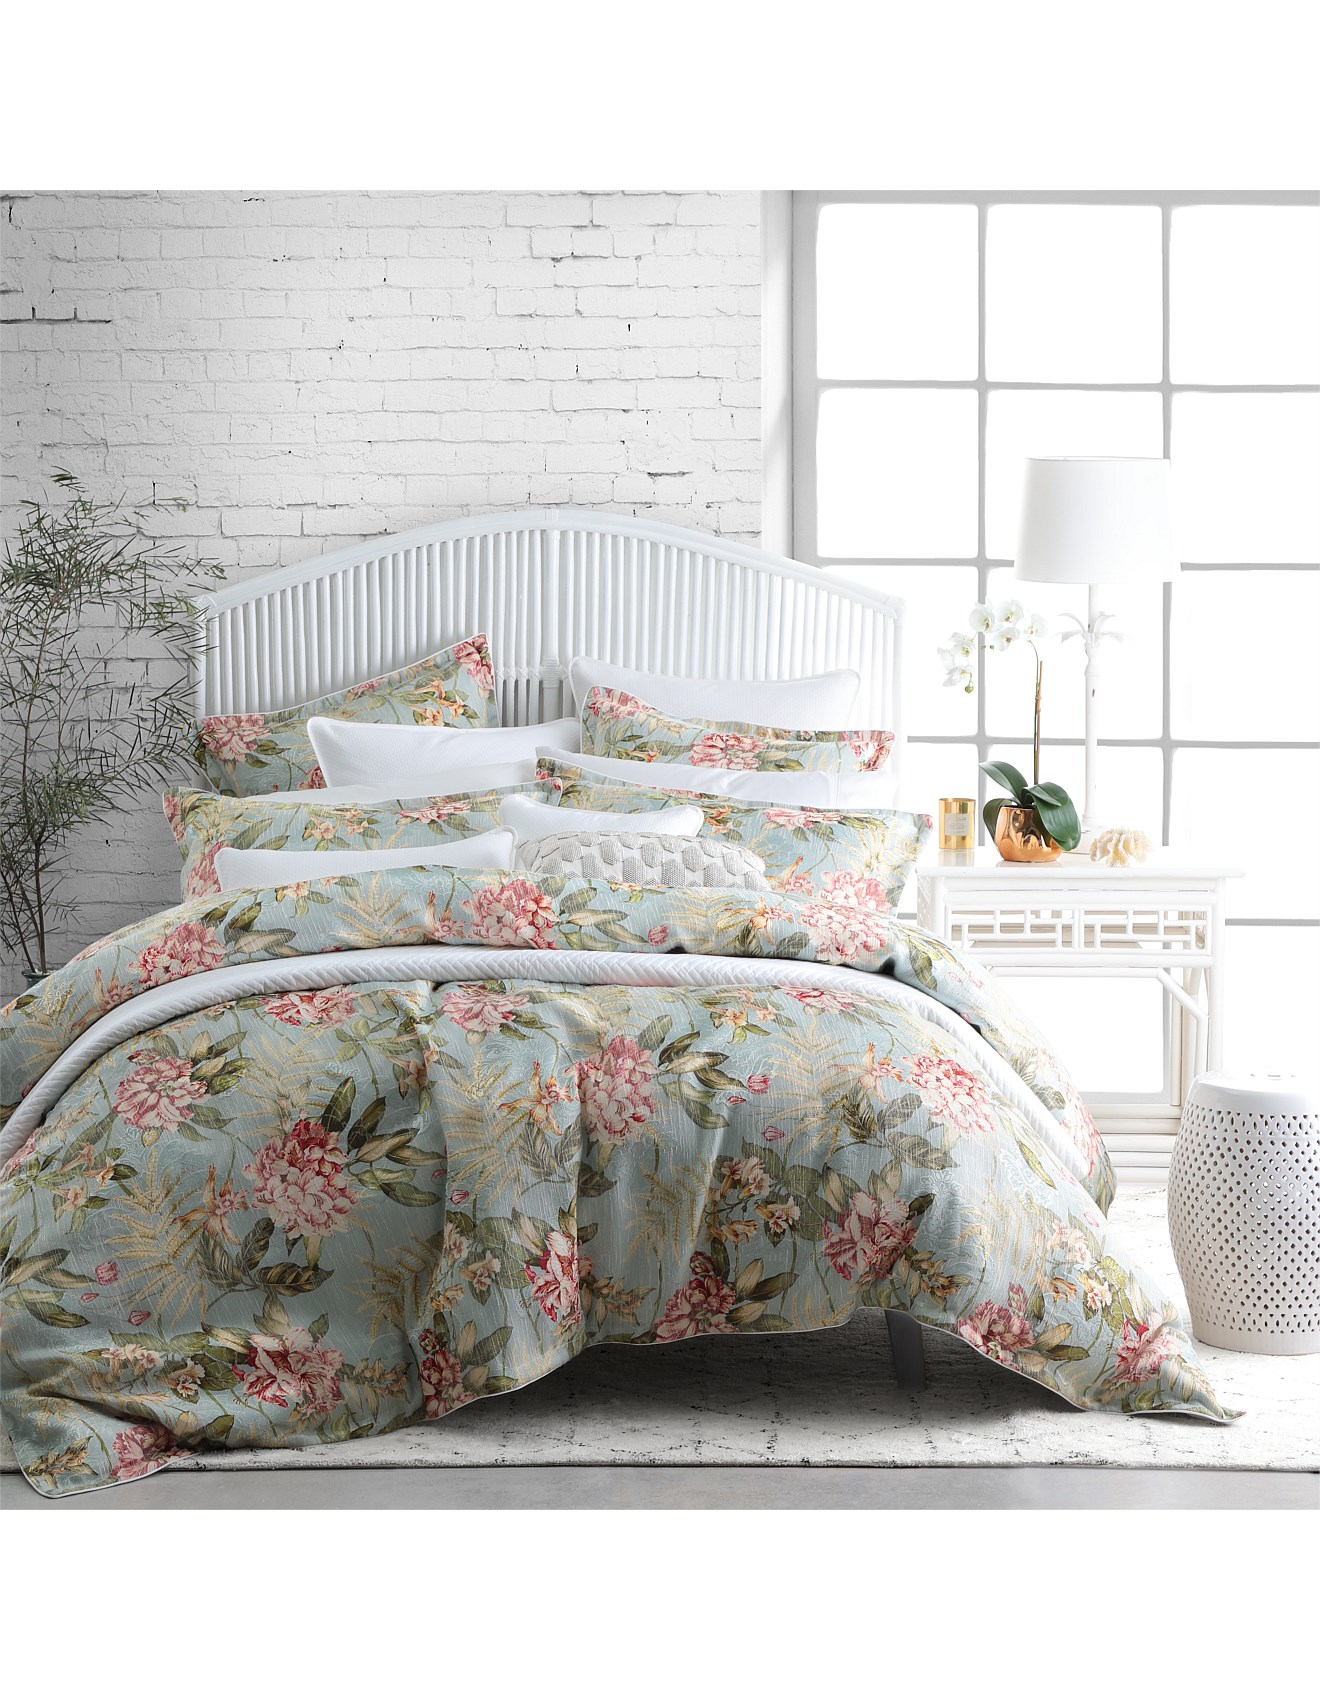 Bed and bath buy bedding quilts more david jones leura mist quilt cover set king bed